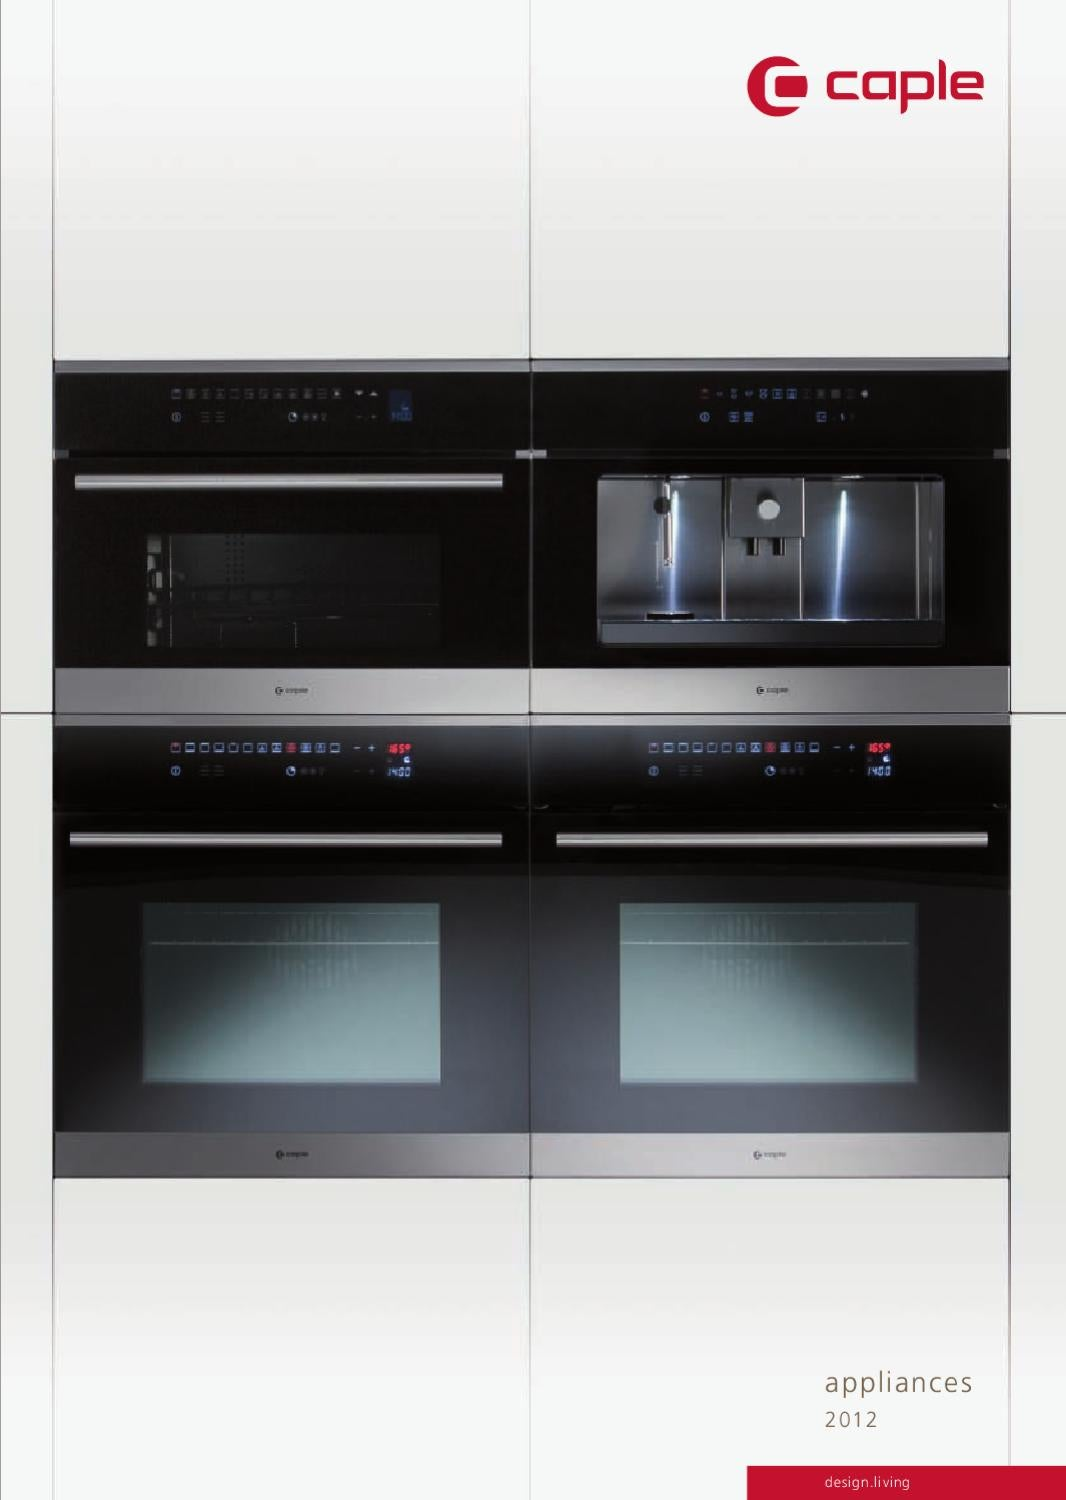 Caple Appliances 2012 by Kitchens Review - issuu